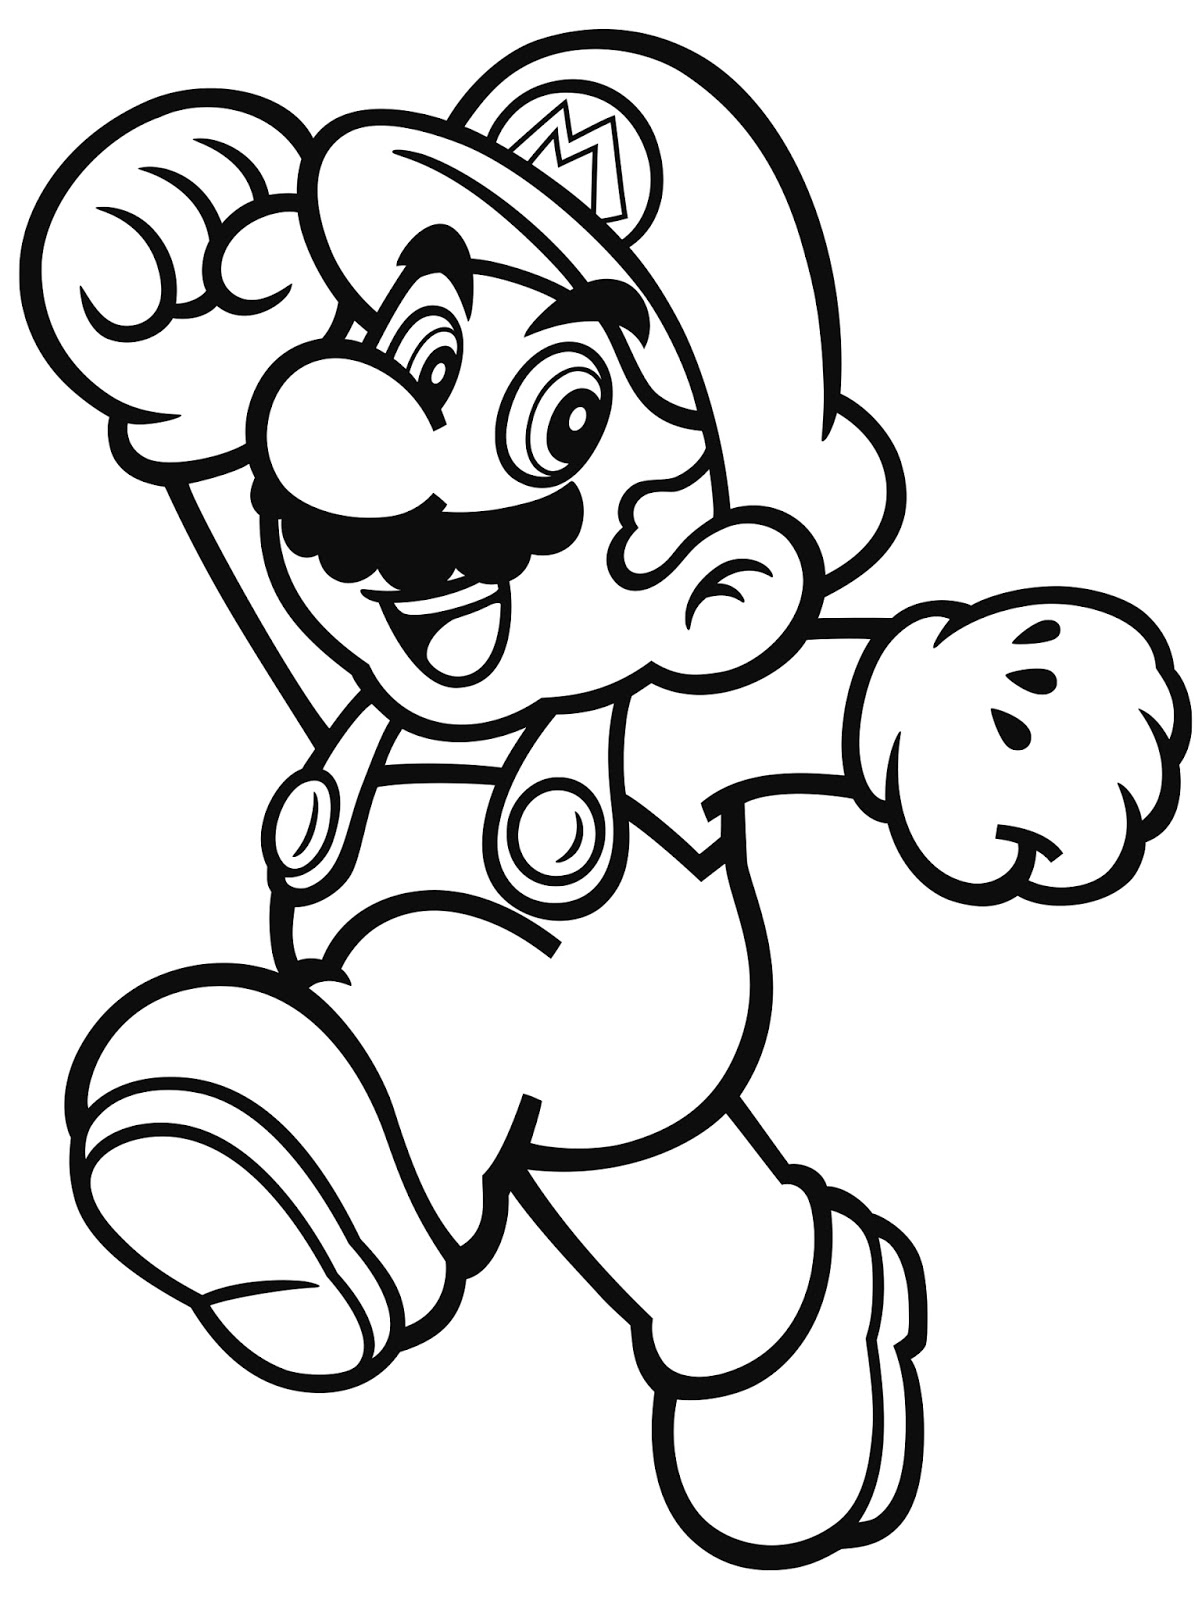 nintendo characters coloring pages nintendo characters drawing at getdrawings free download coloring characters pages nintendo